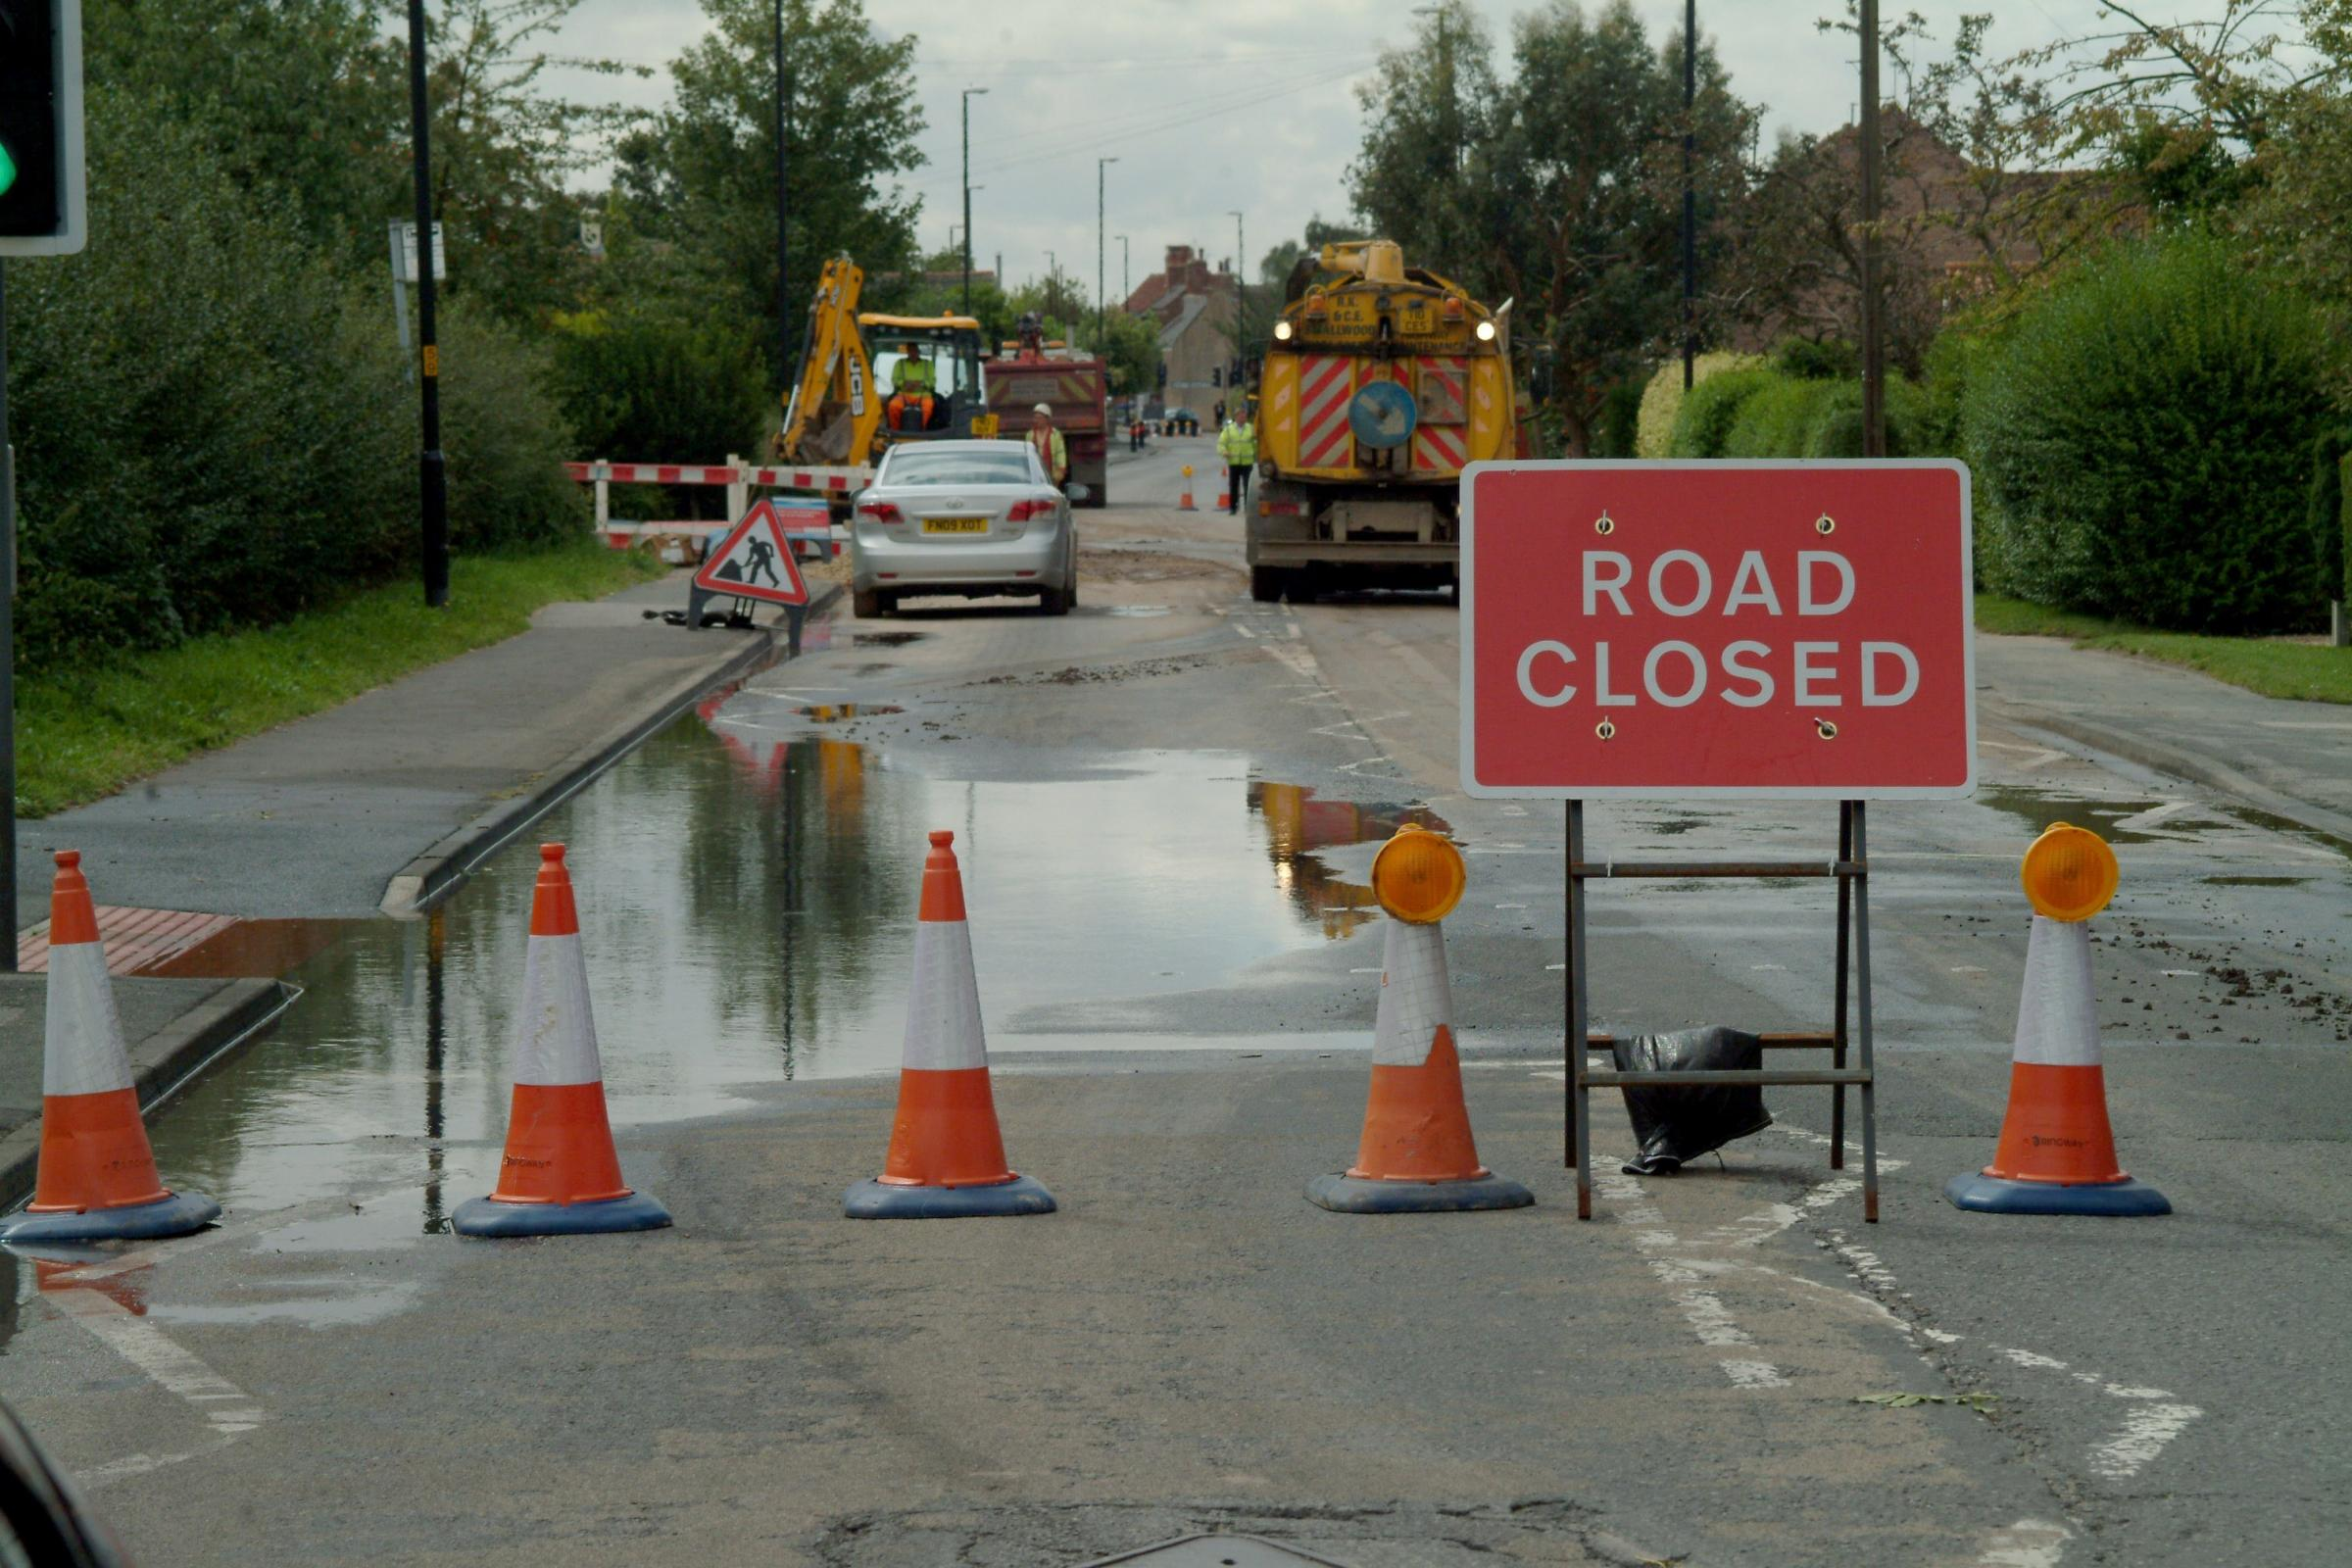 Burst water mains and collapsed sewer lead to closures of two main roads